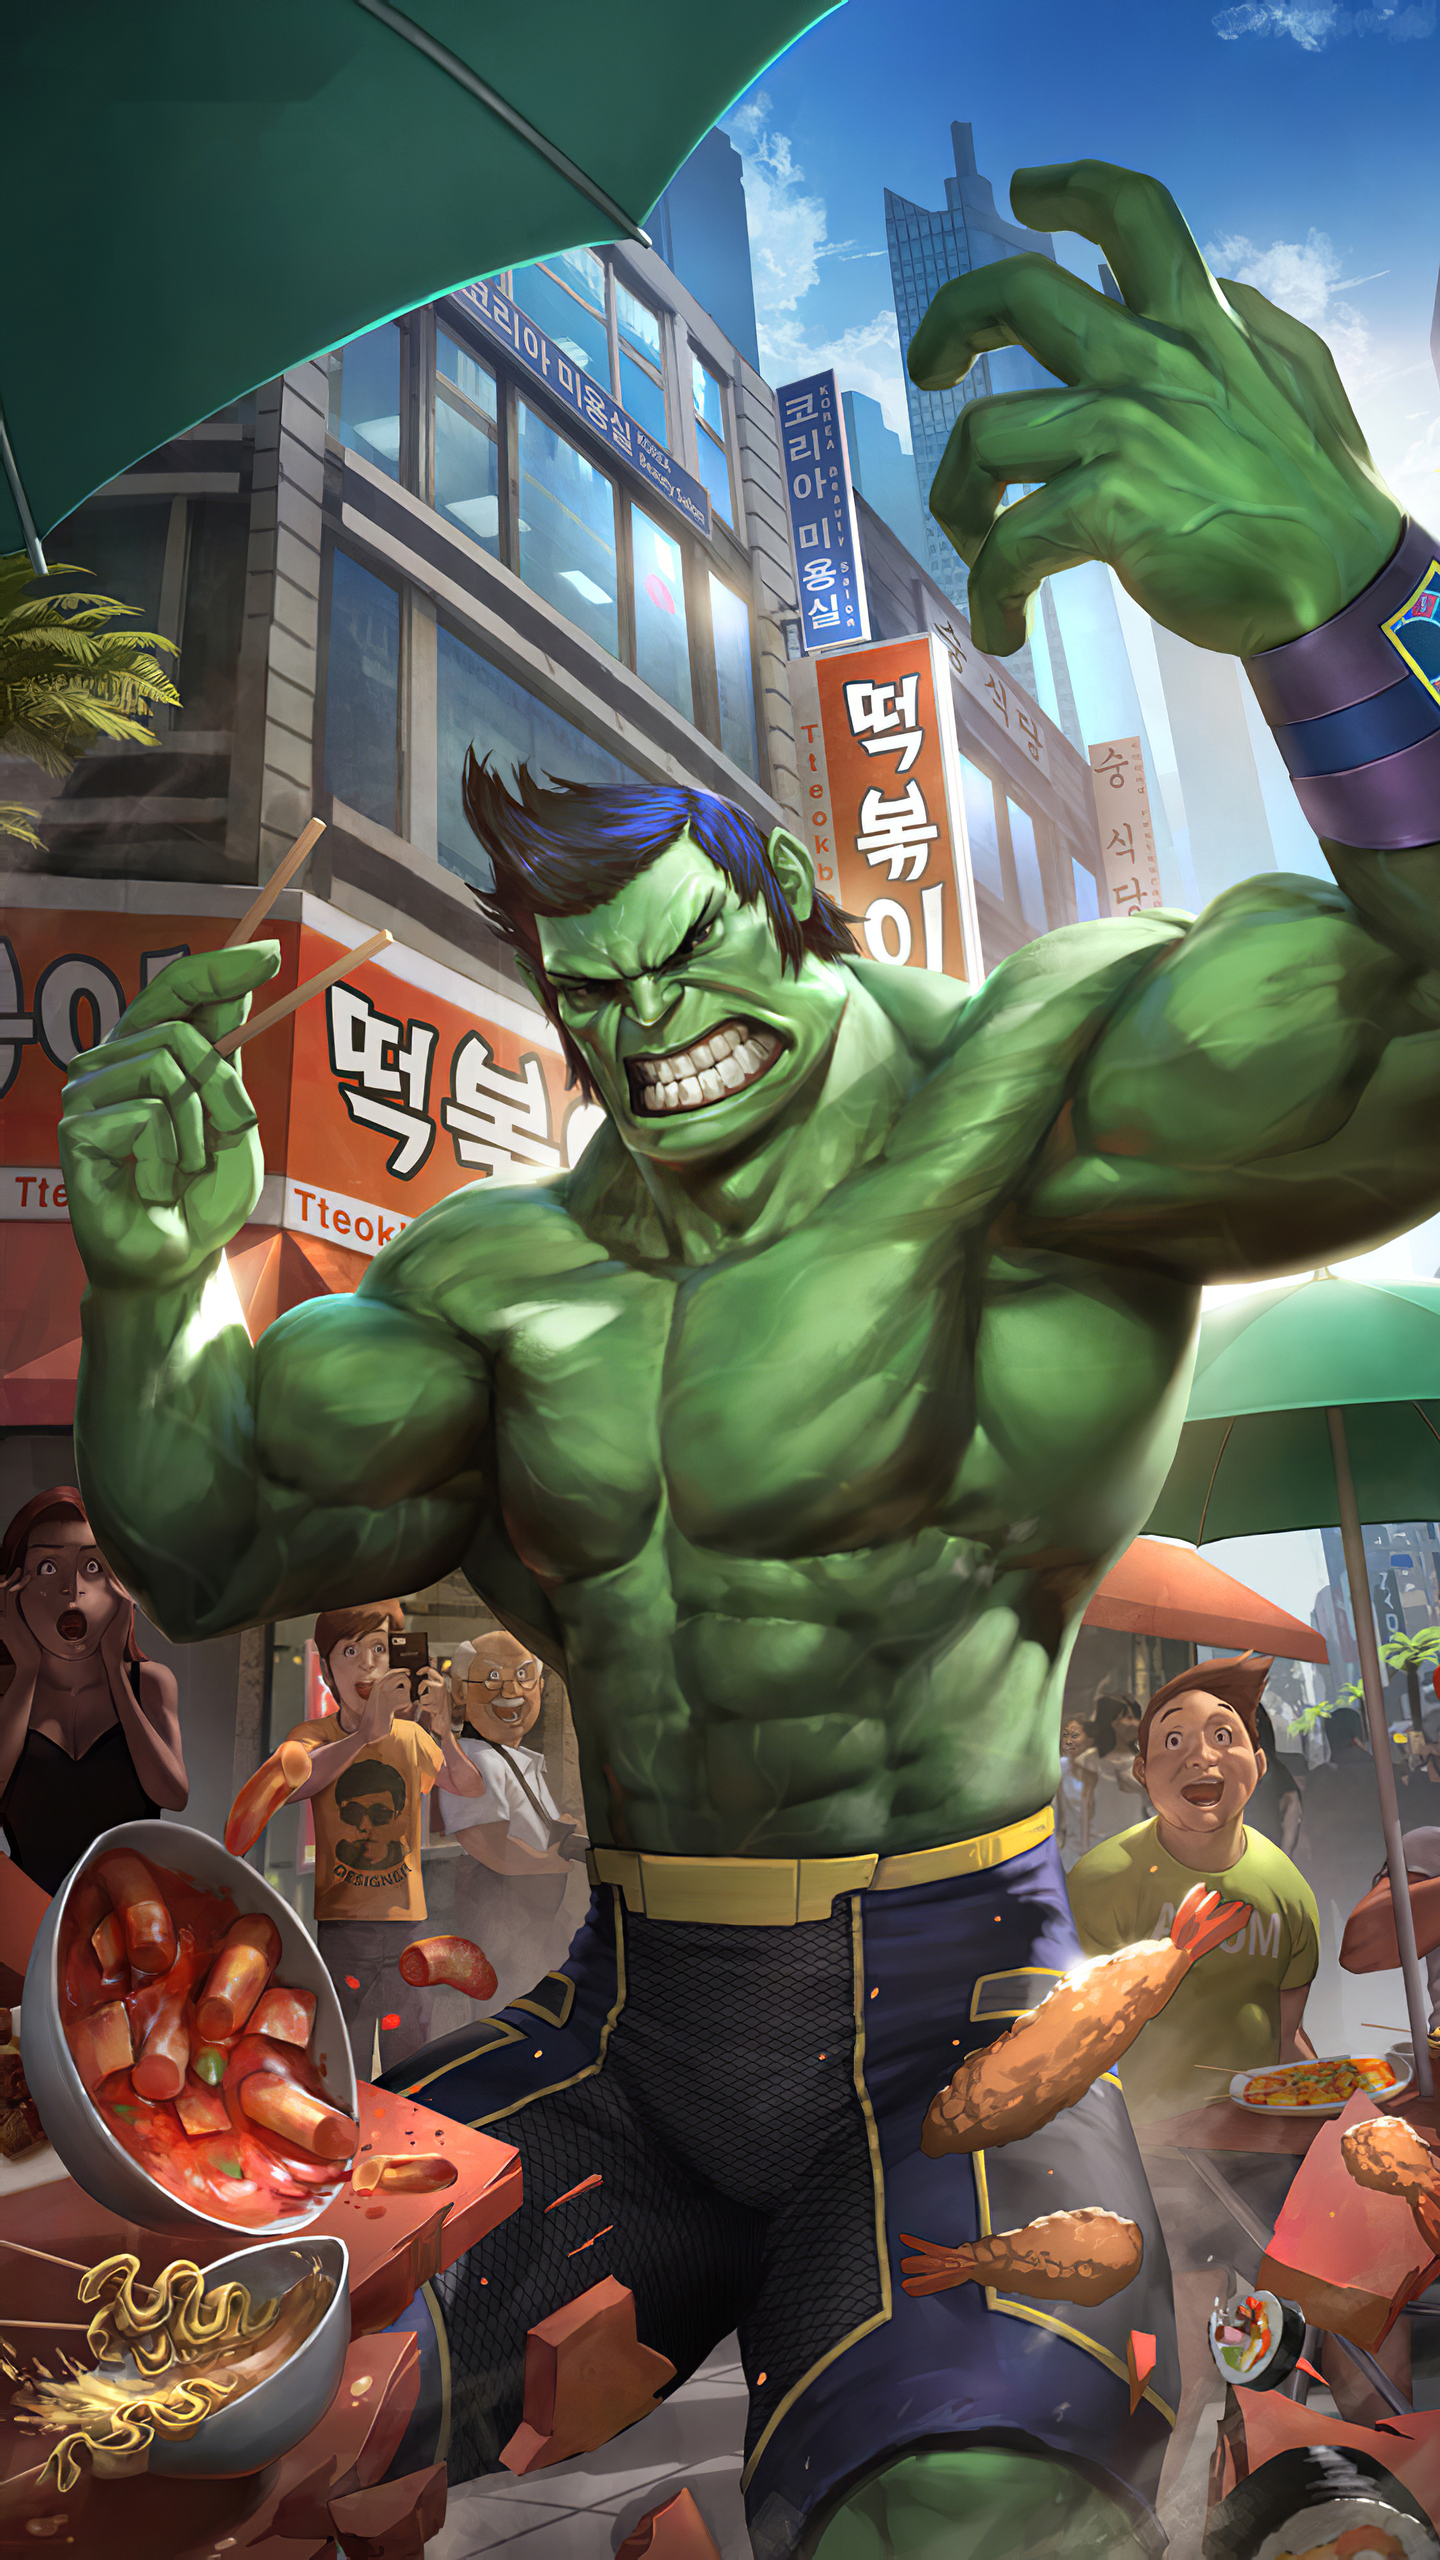 hulk-outside-sn.jpg